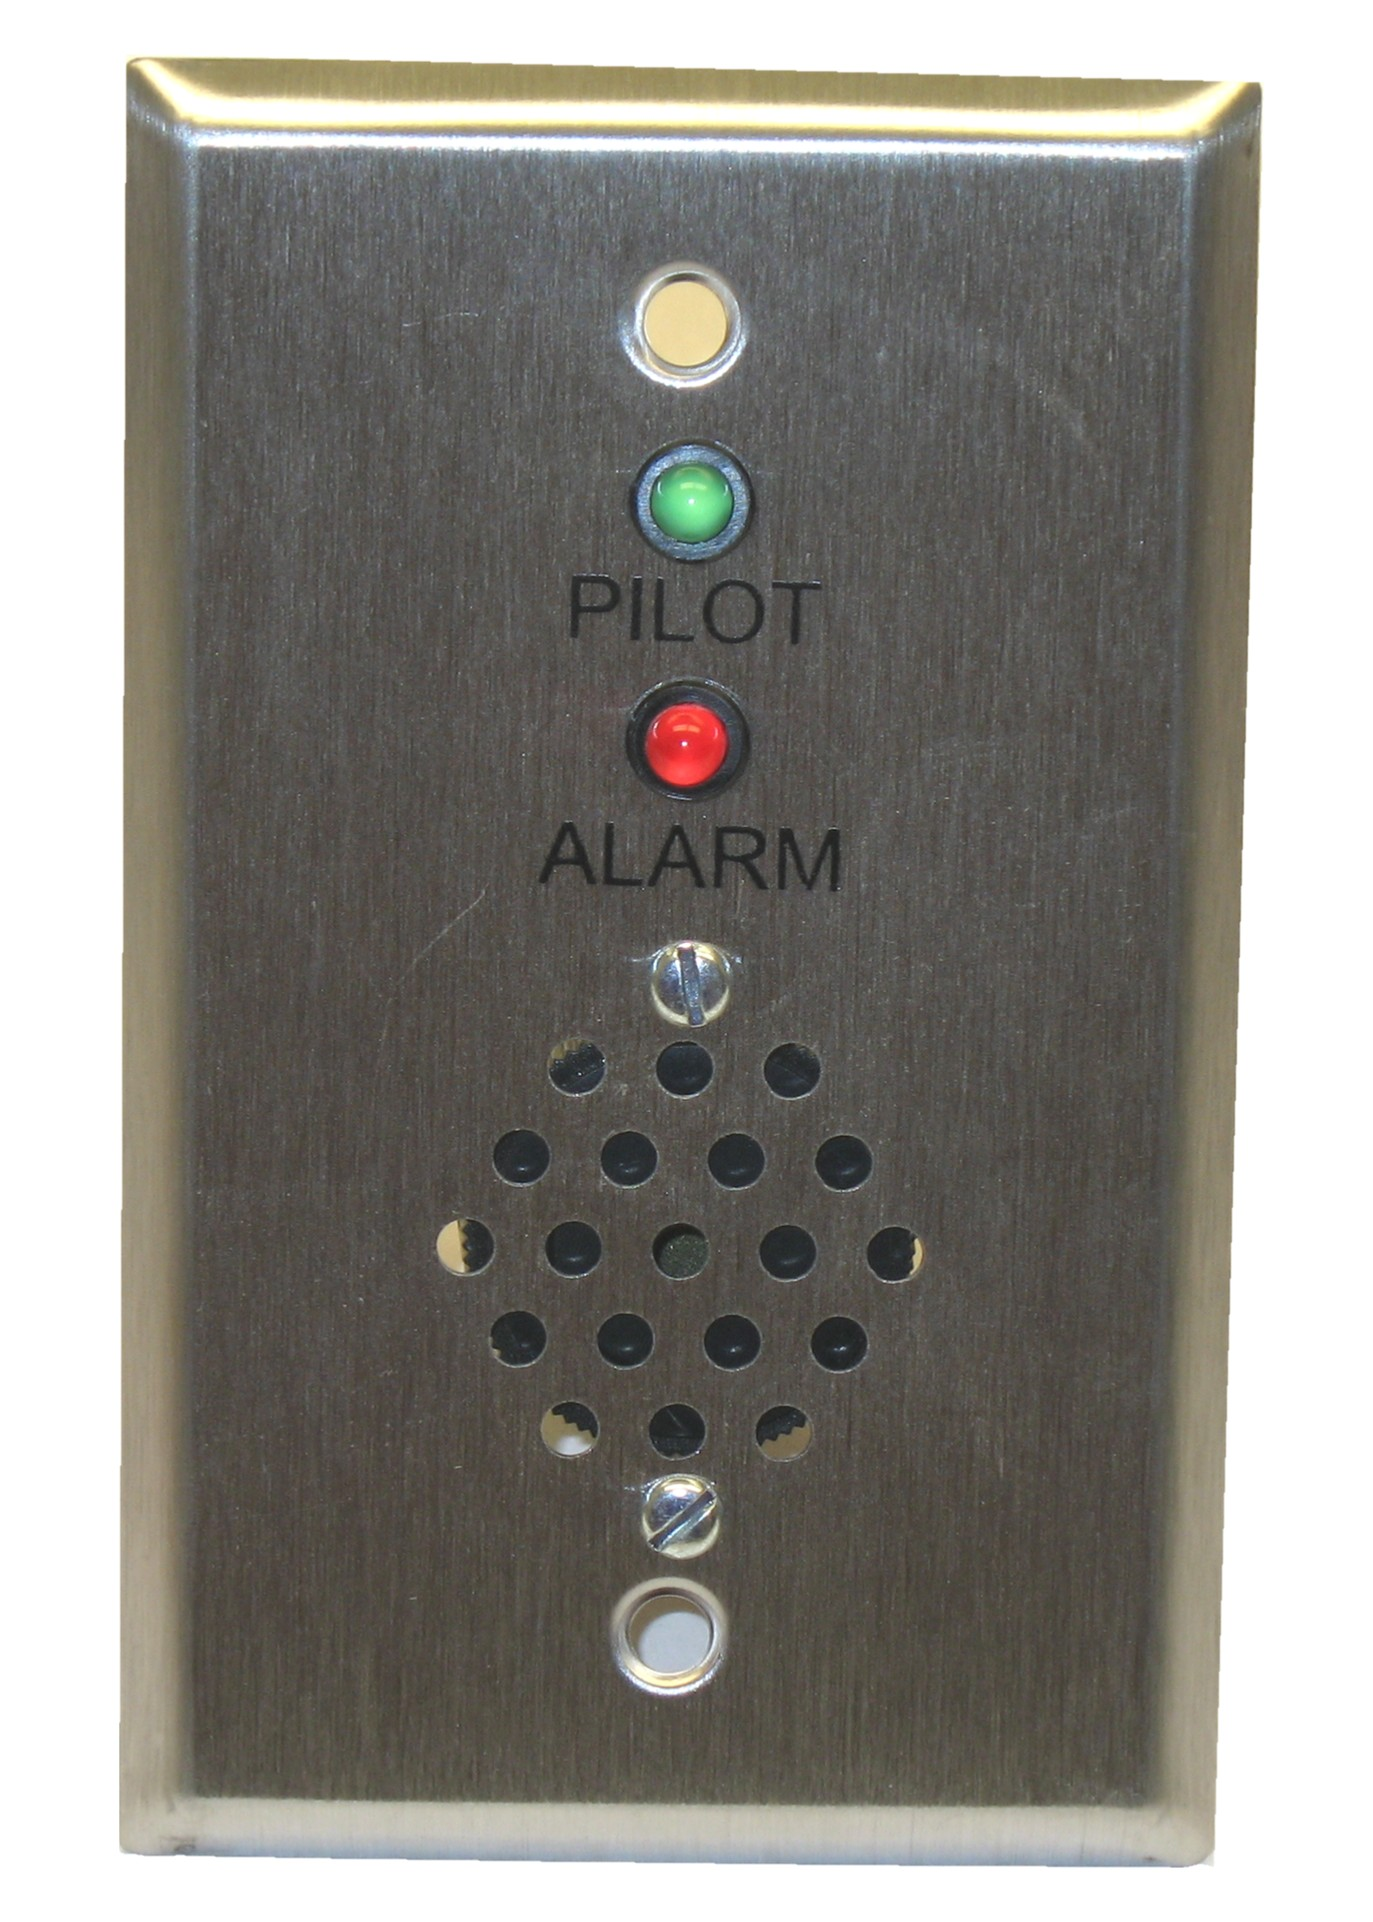 Remote Alarm Led Pilot Led And Alarm Horn For Duct Smoke